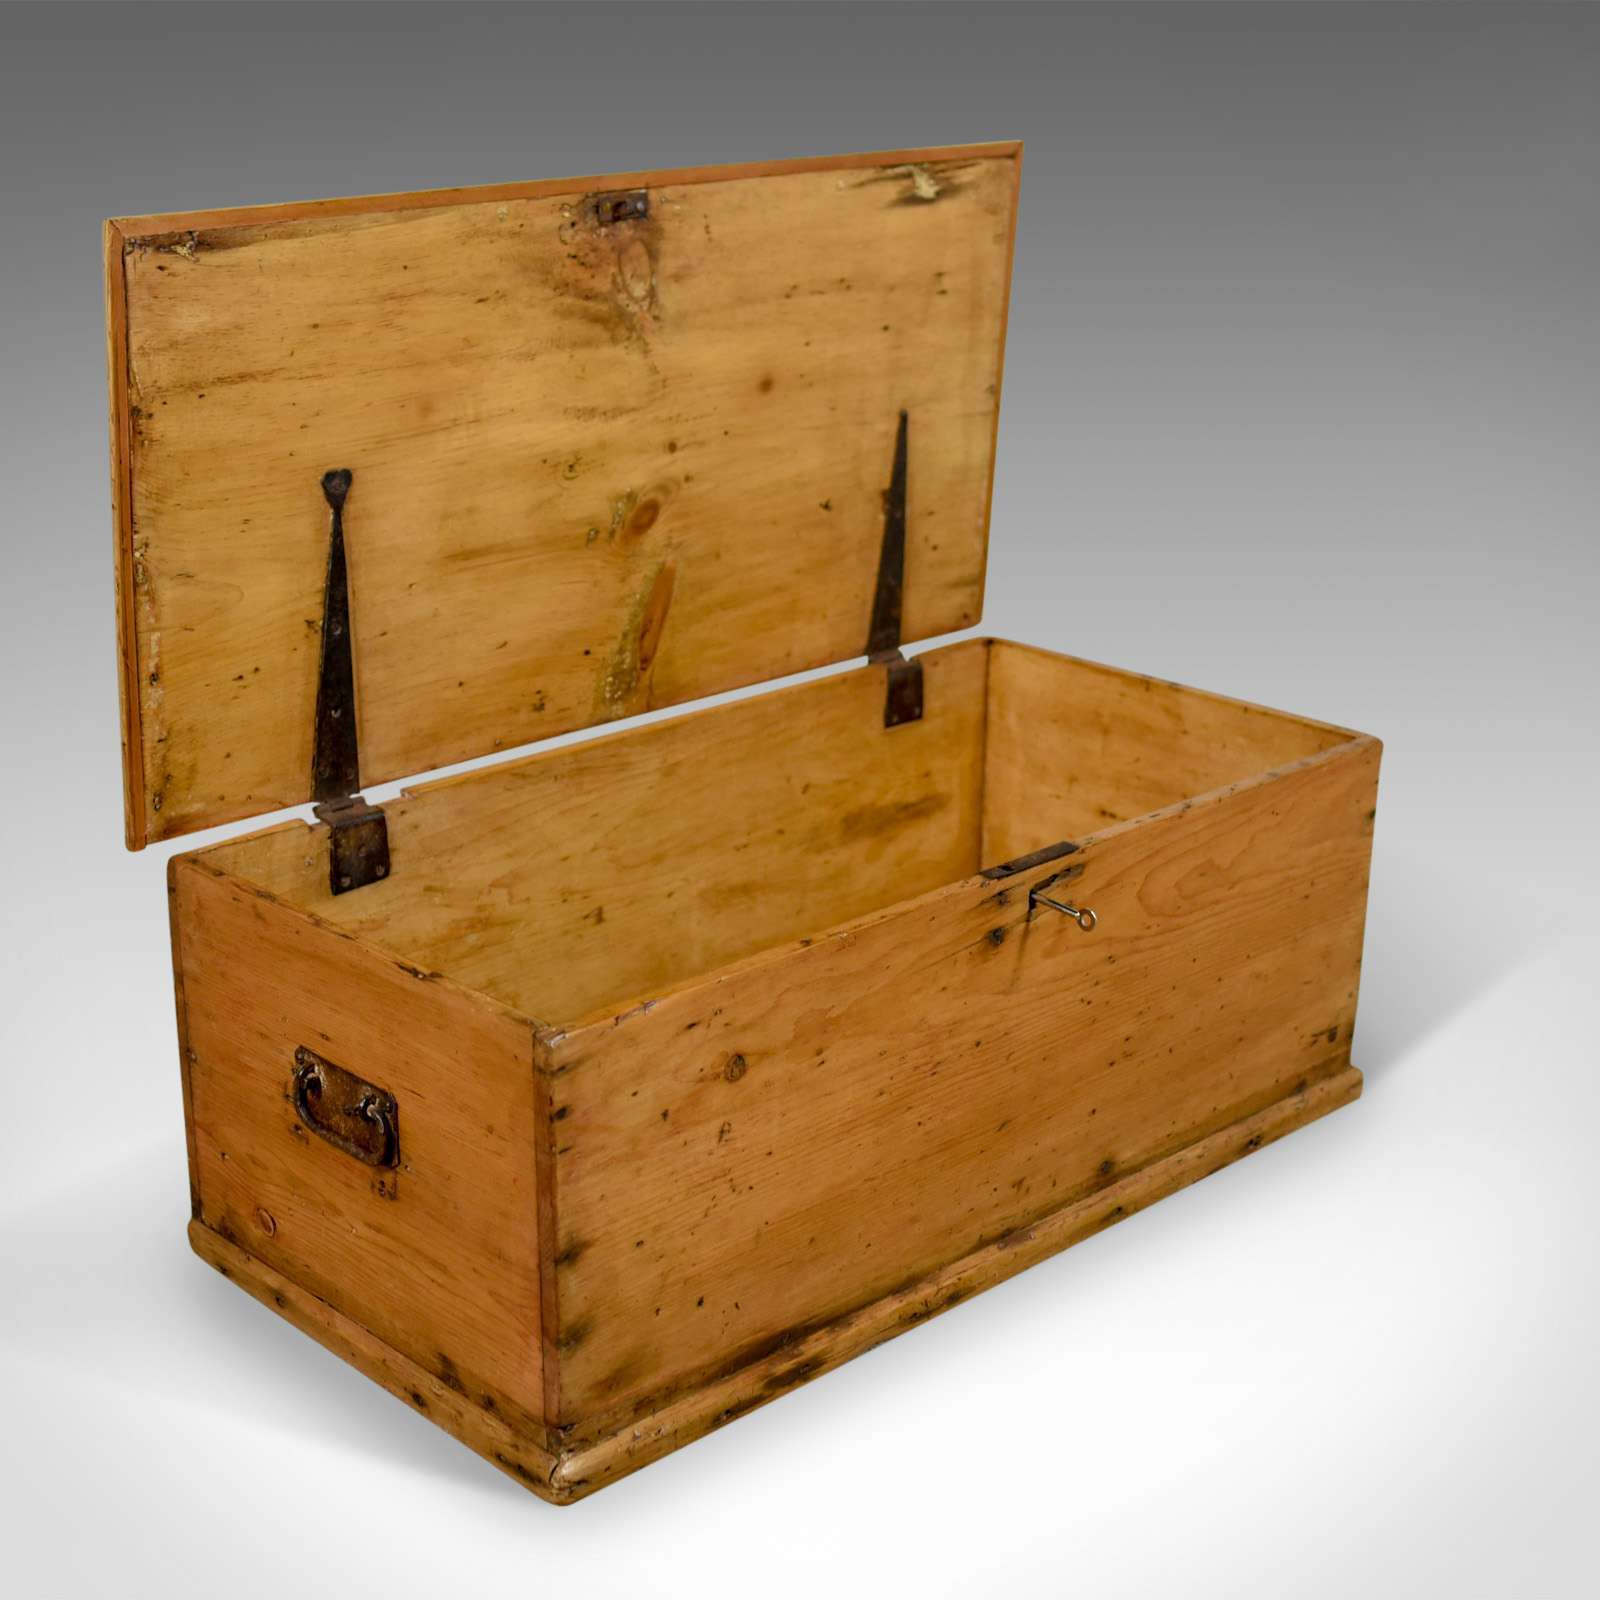 Antique Pine Trunk, English Carriage Chest, Victorian Circa 1880